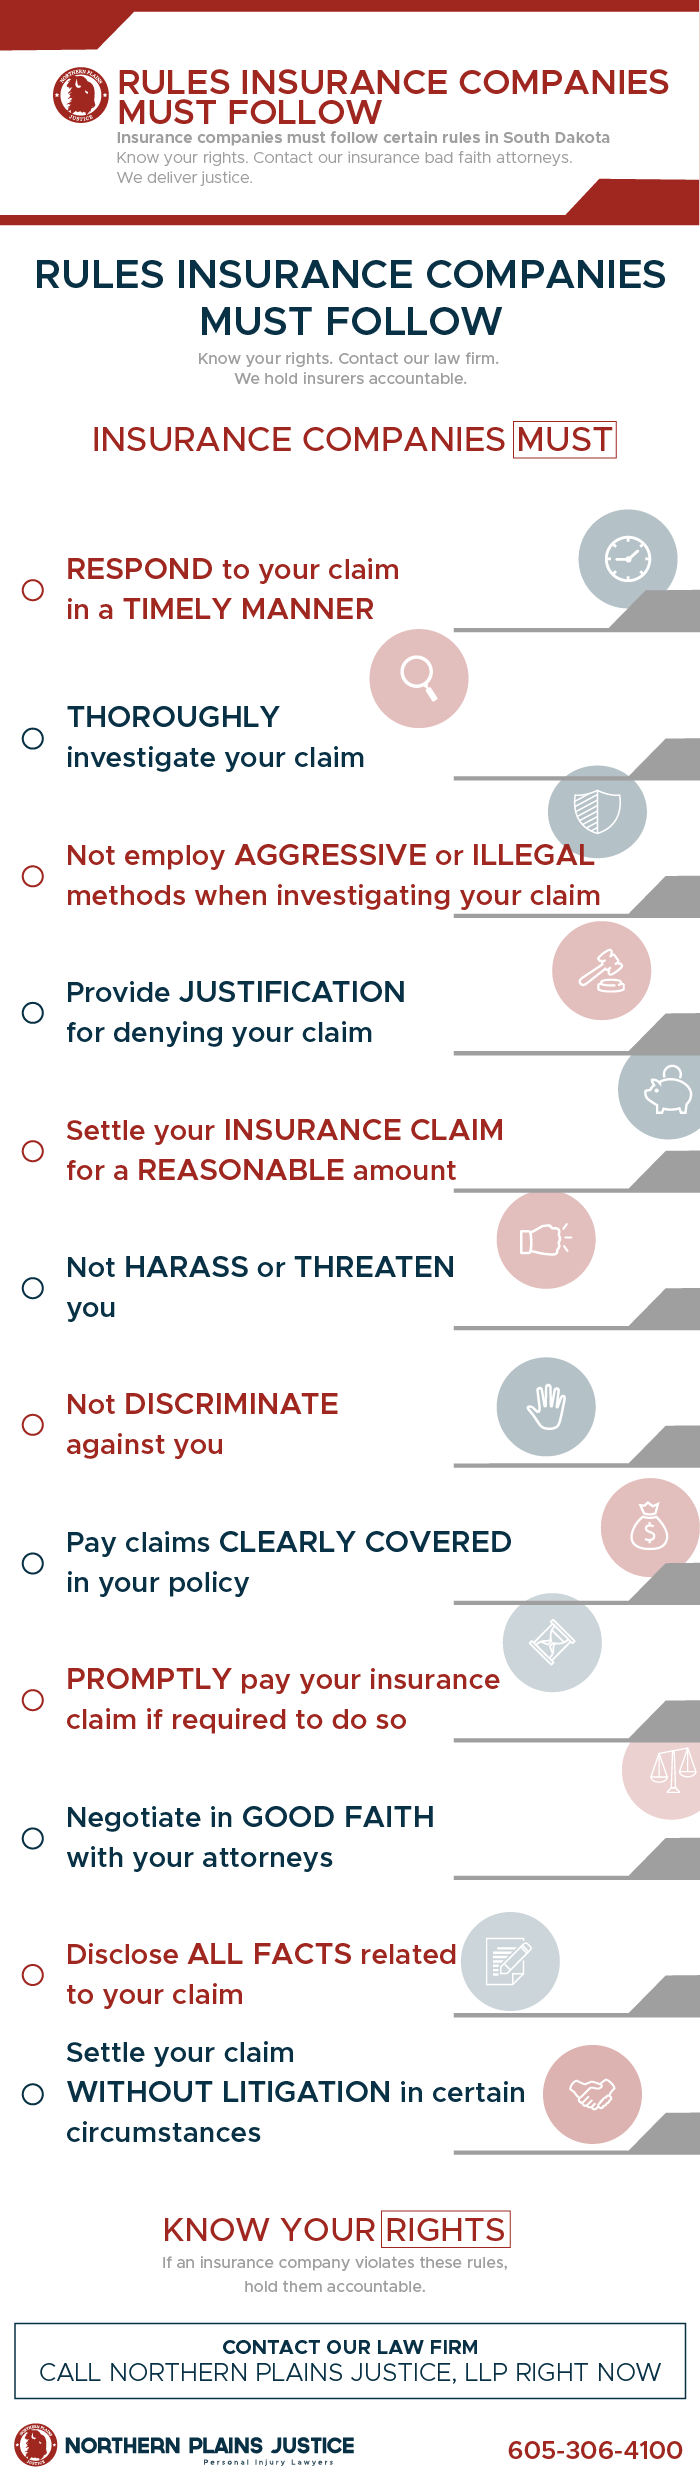 Rules Insurance Companies Must Follow Infographic